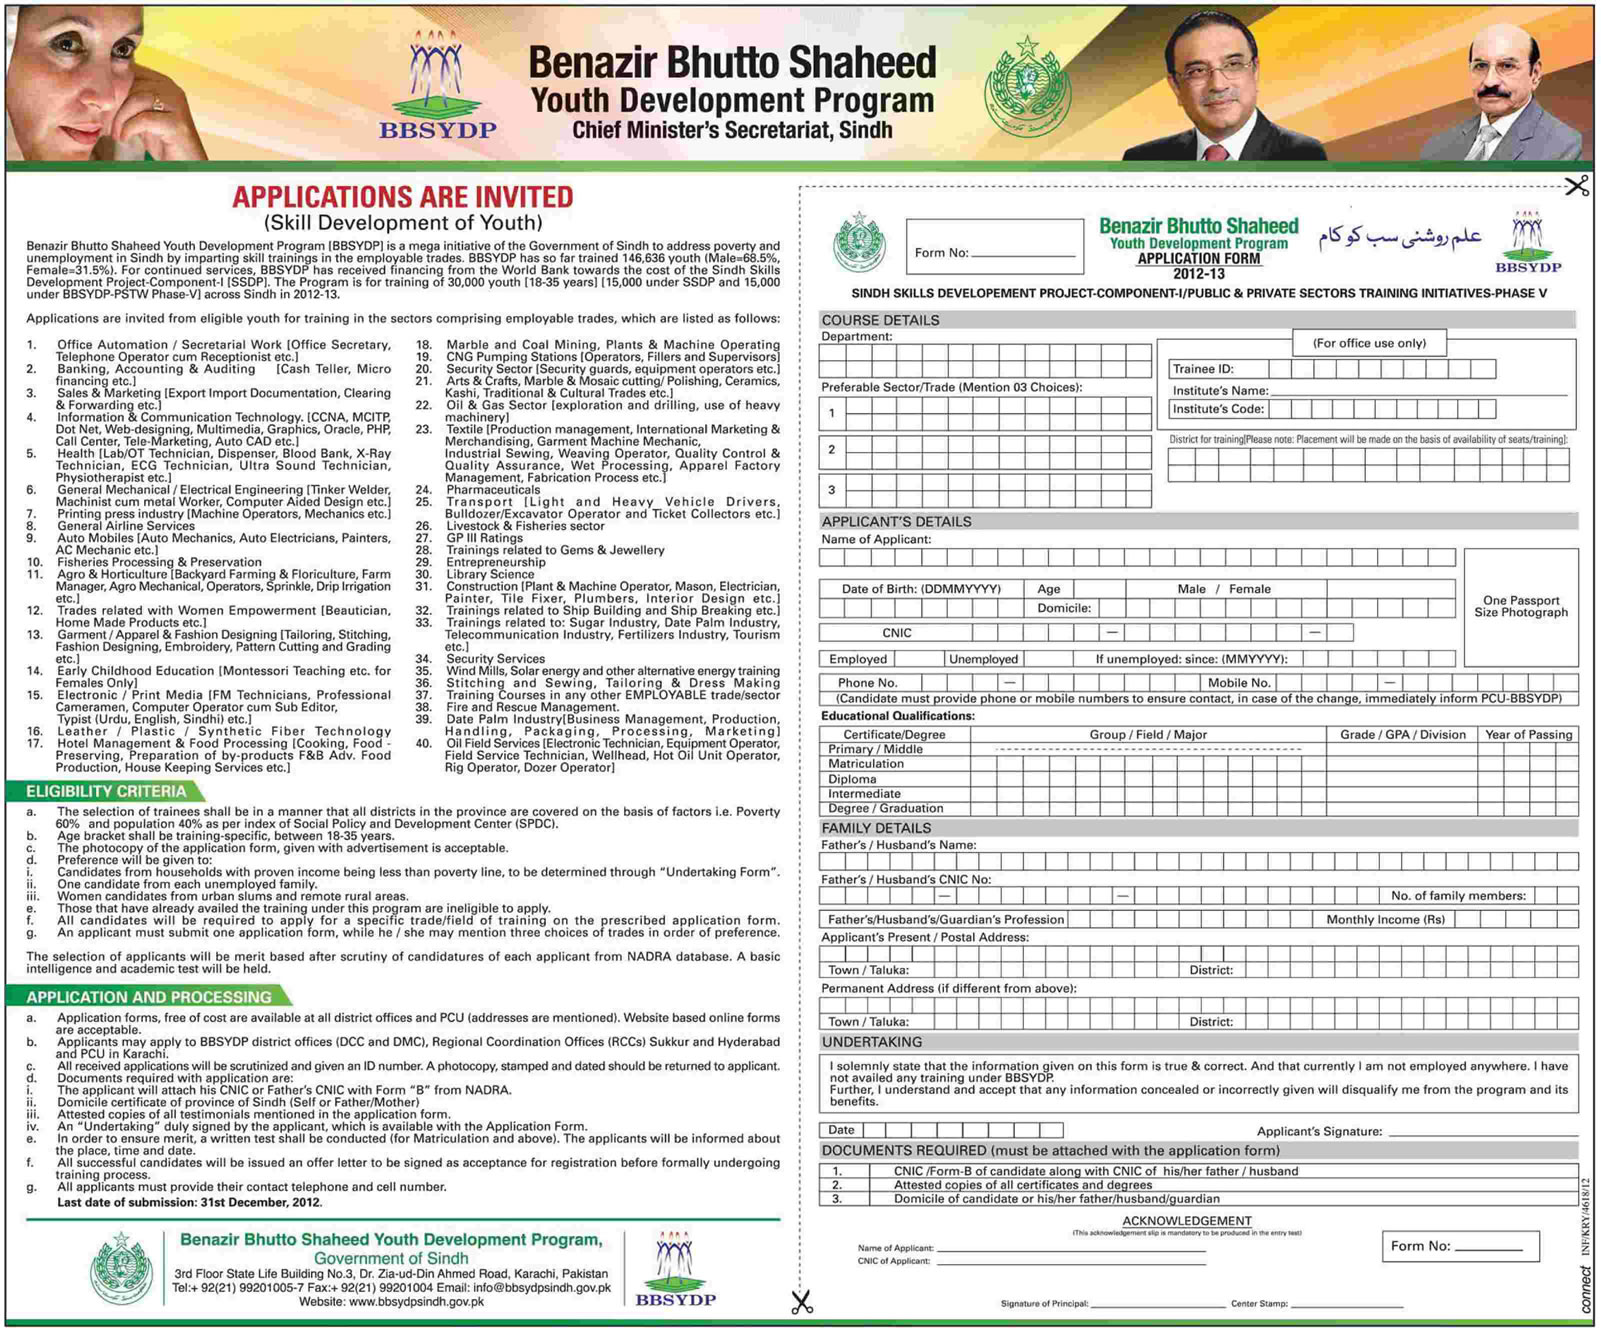 BBSYDP Application Form 2012-2013 SSDP PSTW Phase 5 Training Courses